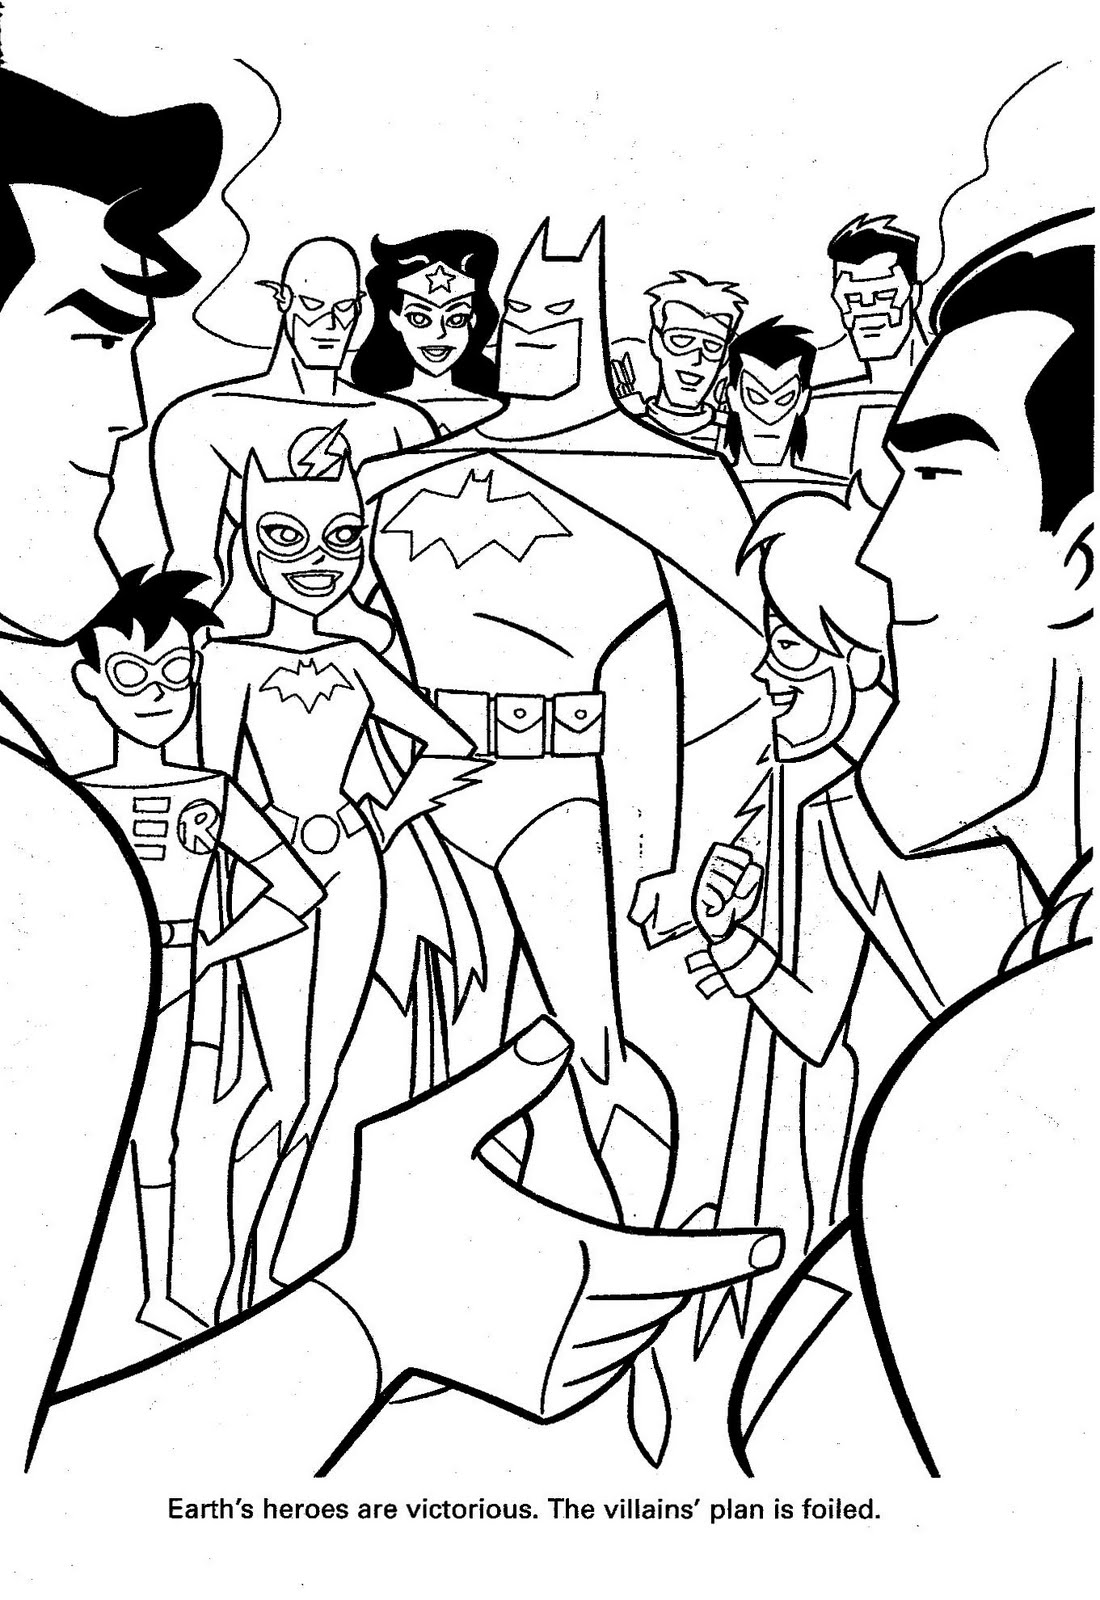 dc little people coloring pages - photo#23